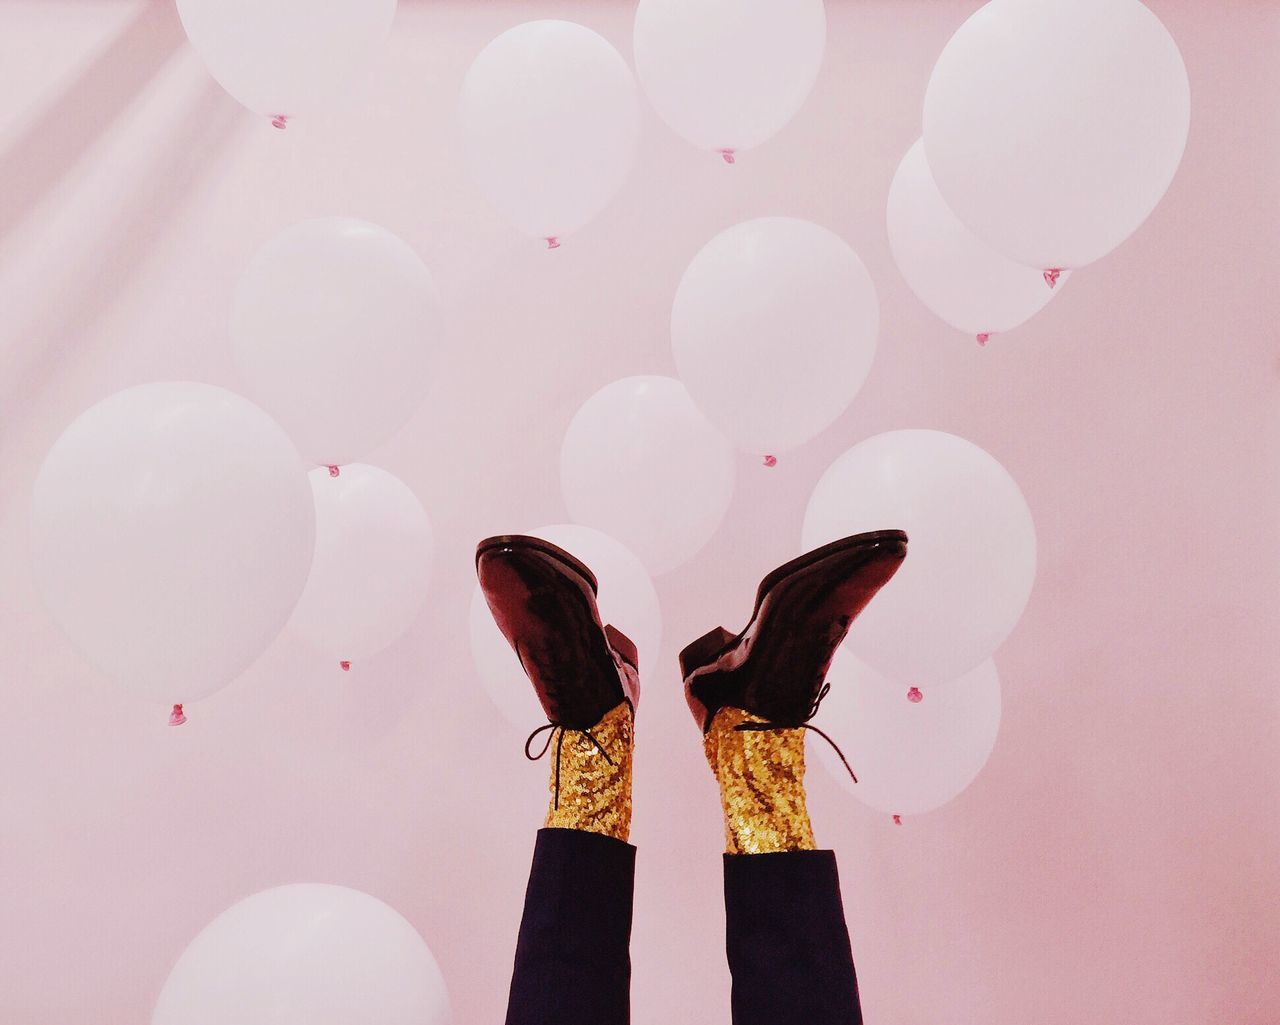 Low section of man with balloons against pink wall during party